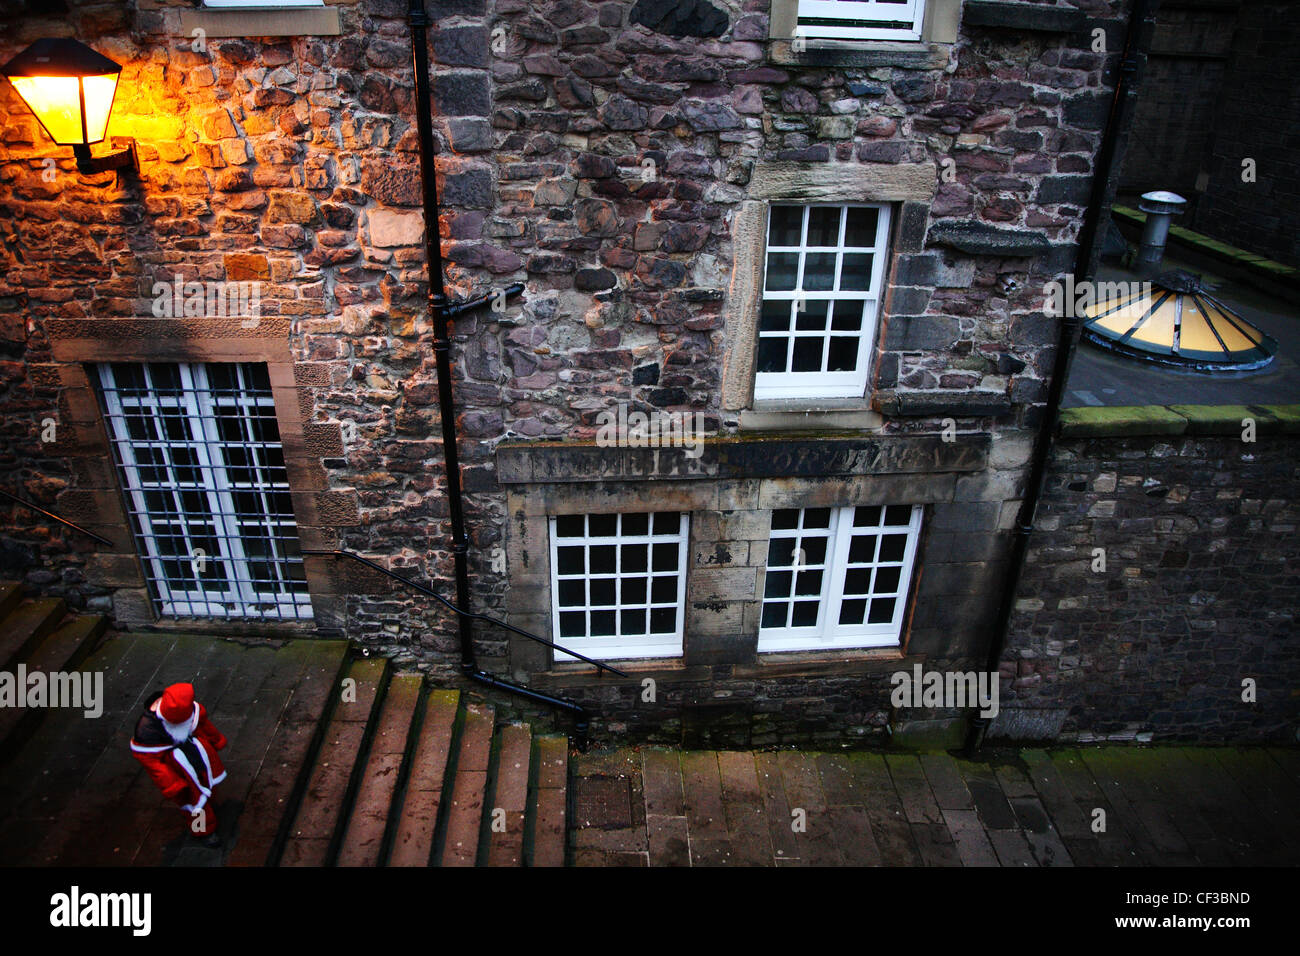 Looking down on the street to a person  in costume during the Edinburgh Christmas Santa Stroll. - Stock Image